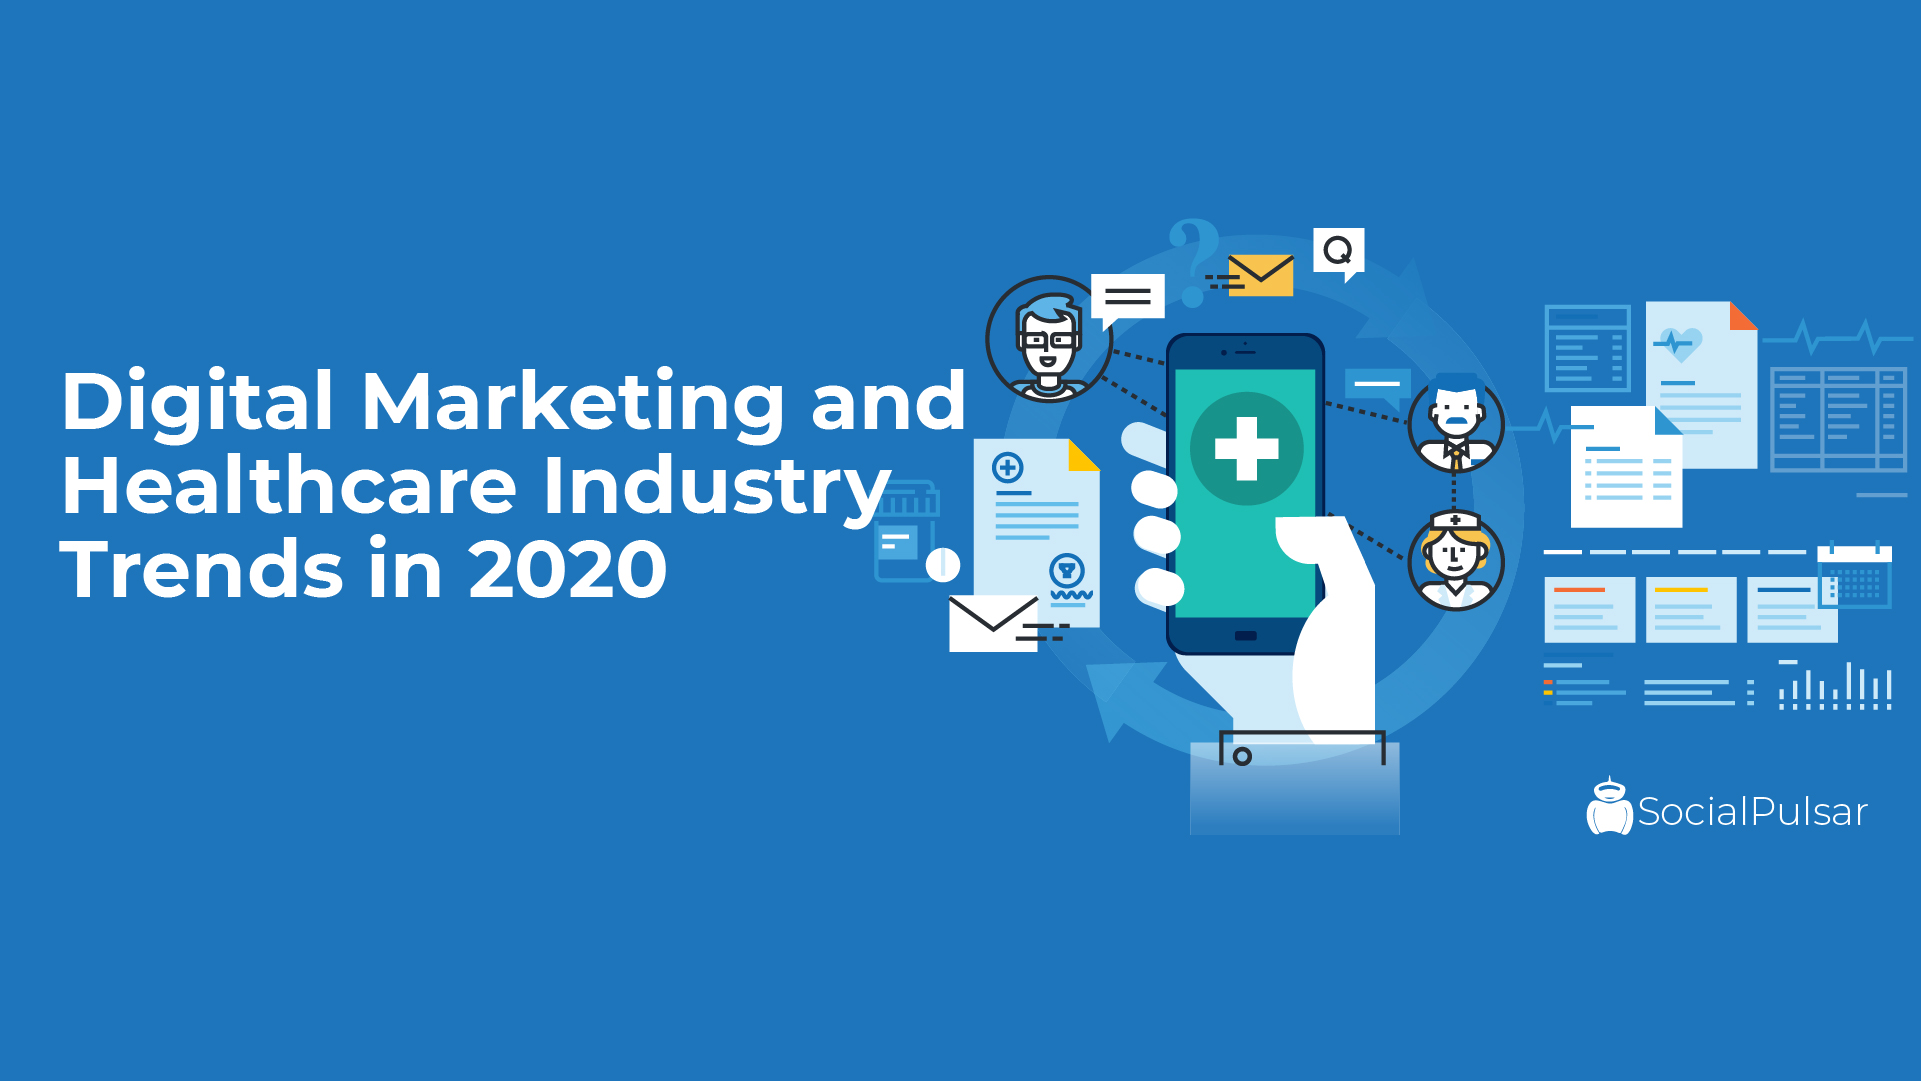 Digital Marketing and Healthcare Industry Trends in 2020